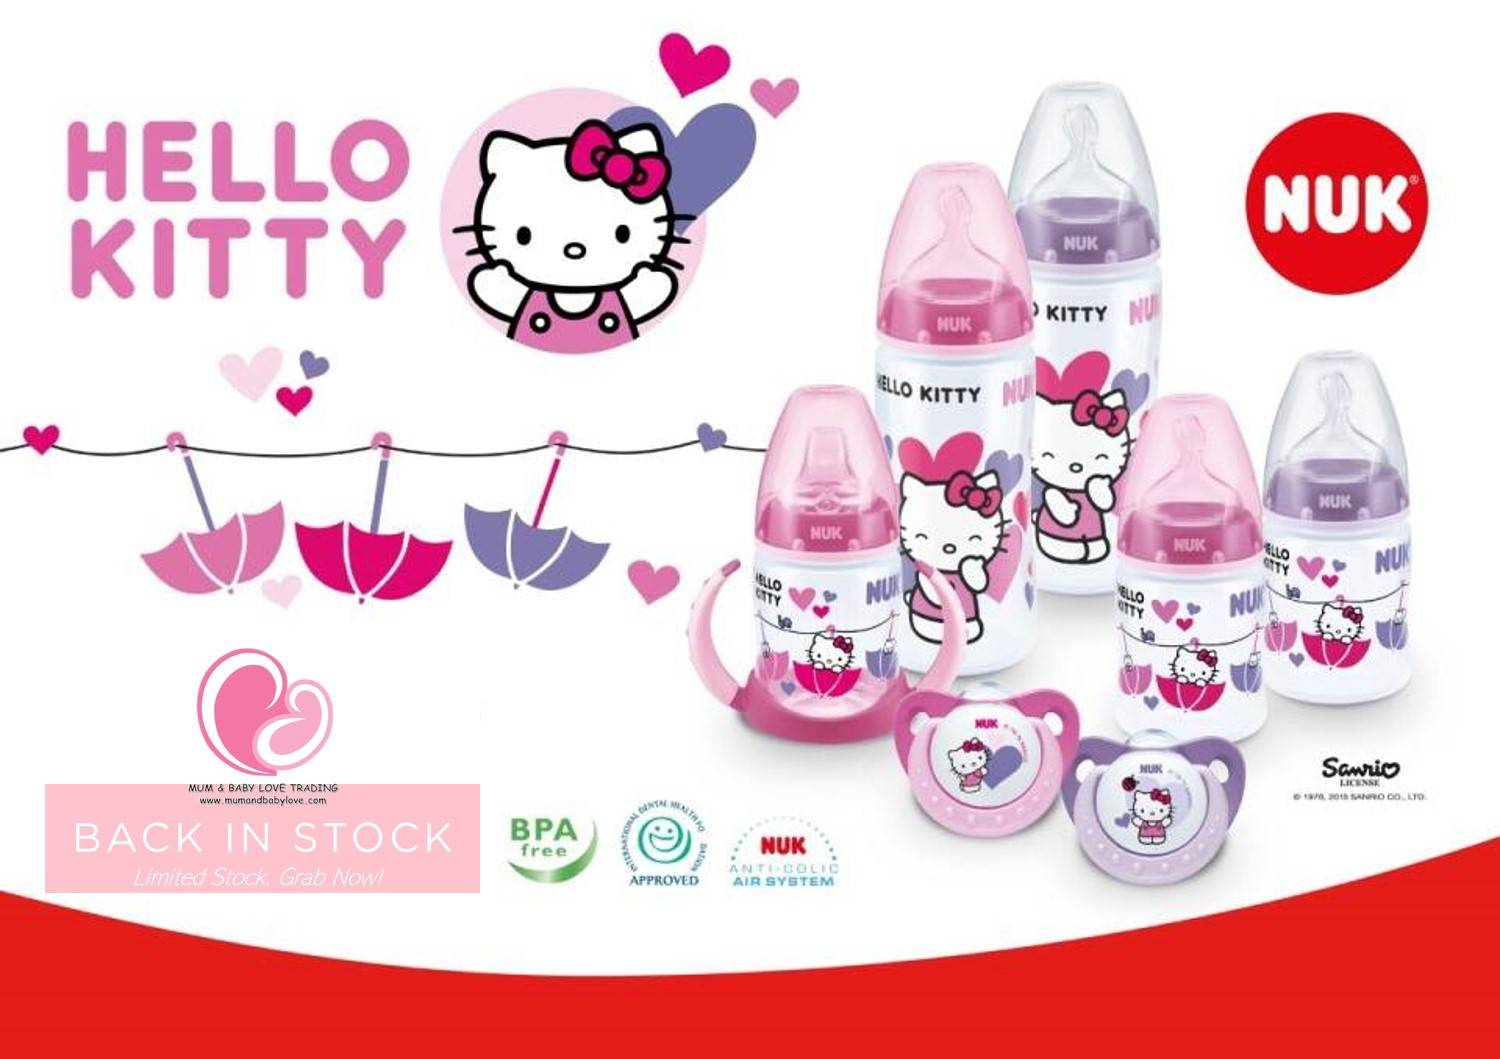 NUK Hello Kitty Range